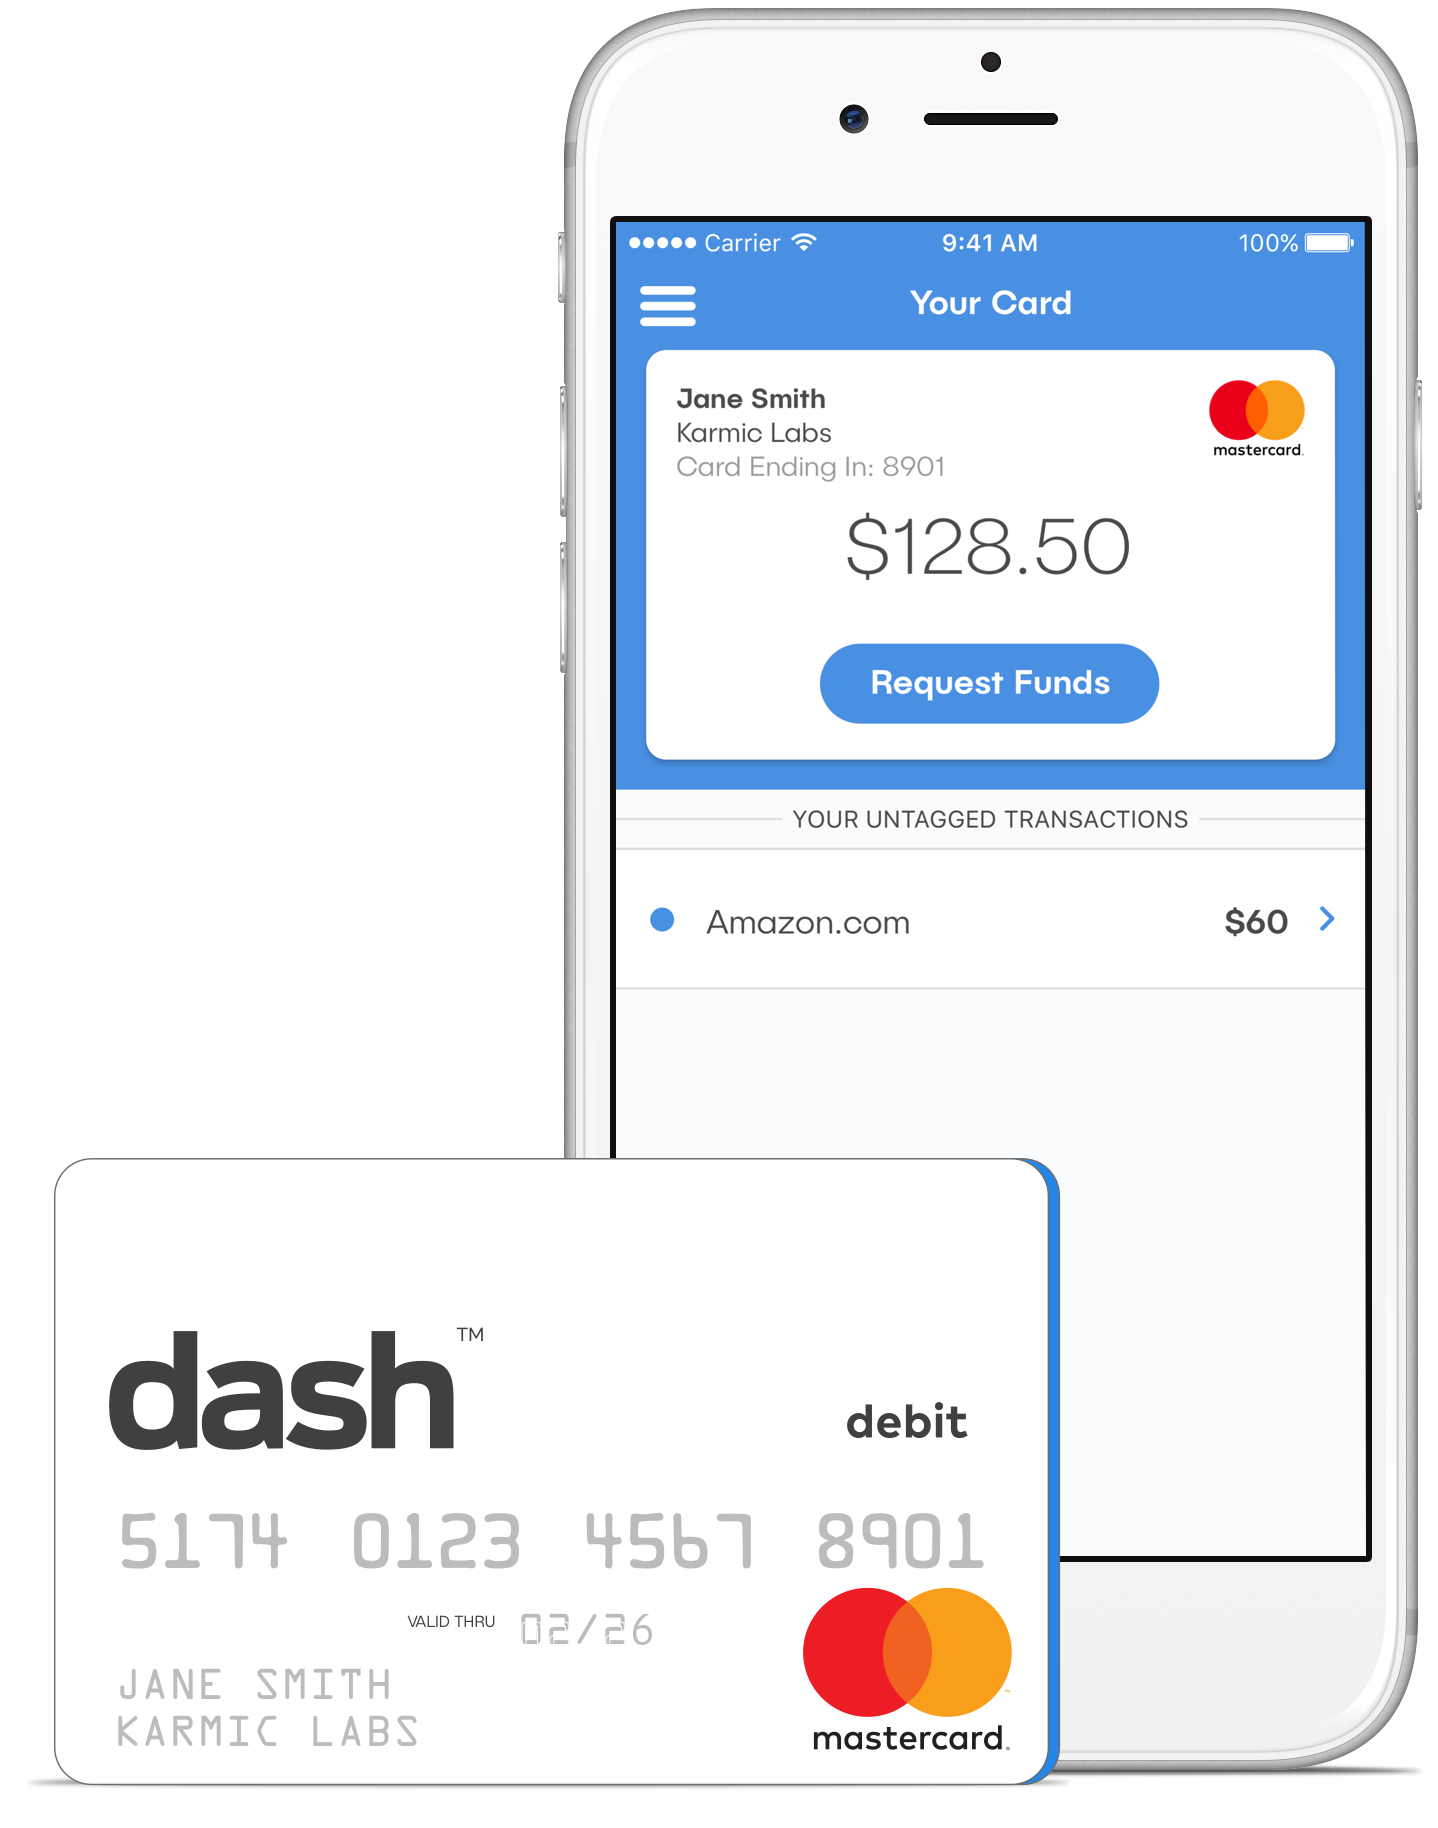 dash™ Prepaid Mastercard Expense Management No Hassles